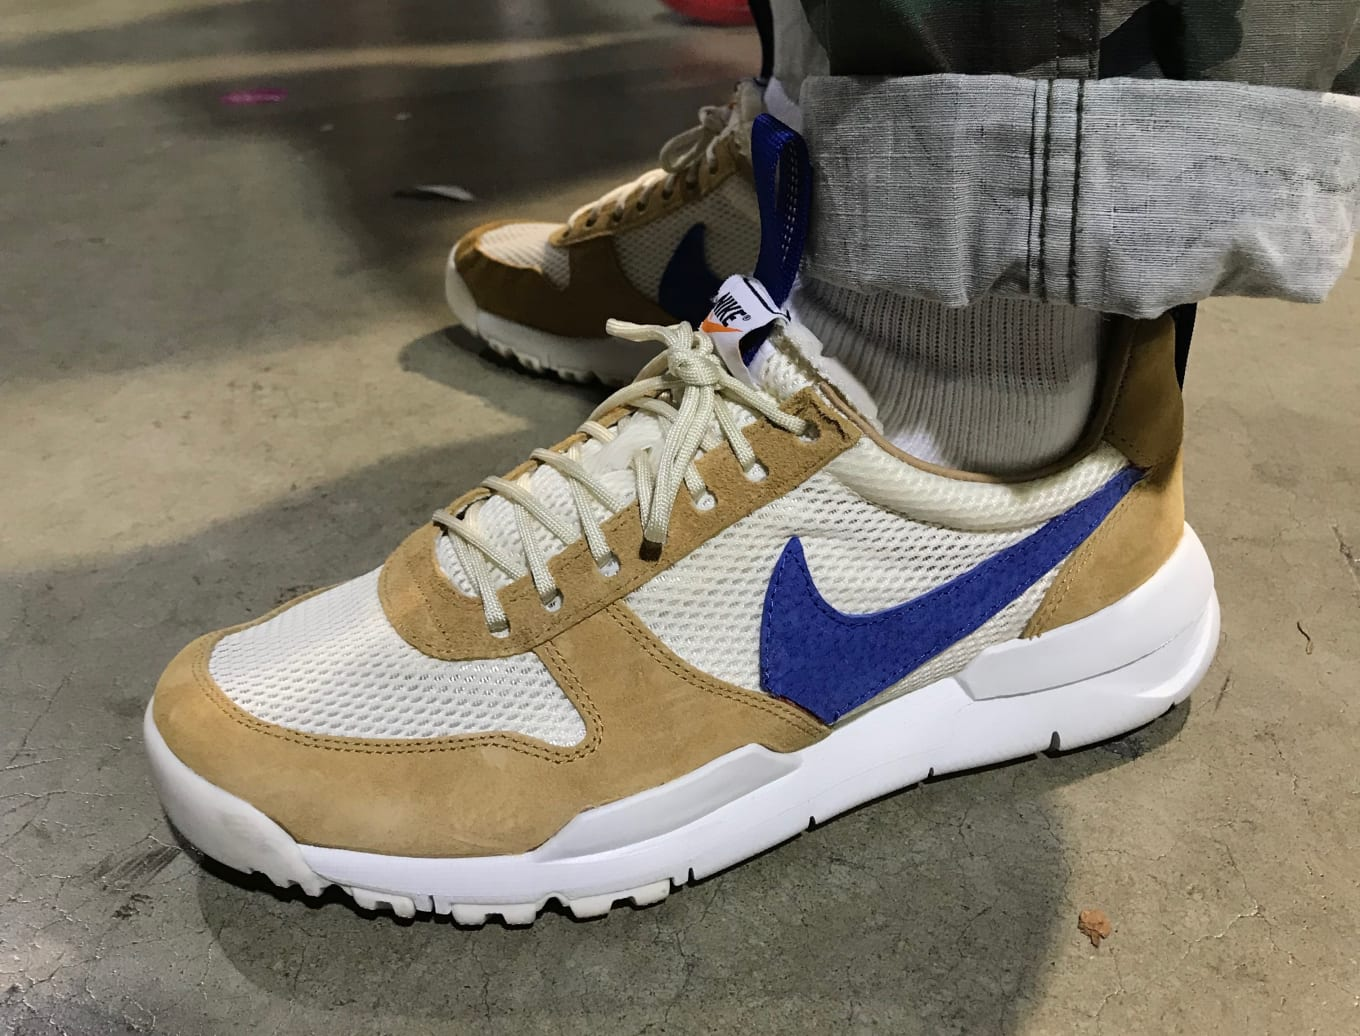 detailed look 6f330 72545 Unreleased Tom Sachs x Nikes Surface. A blue version of the Mars Yard 2.0  spotted on the ComplexCon floor.